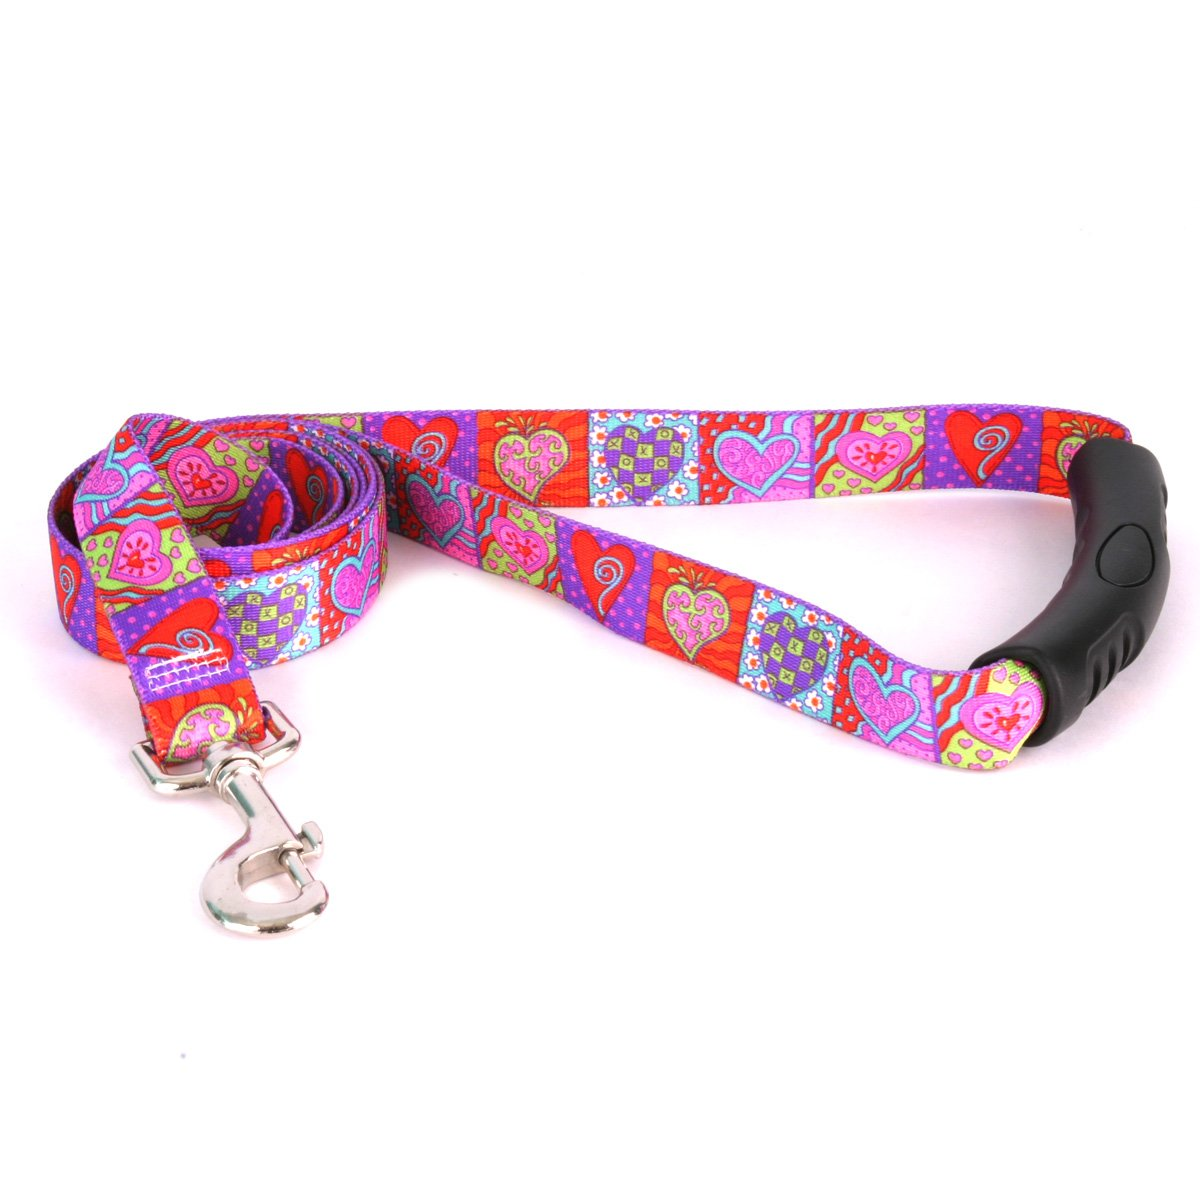 Yellow Dog Design Crazy Hearts Ez-Grip Dog Leash with Comfort Handle 1'' Wide and 5' (60'') Long, Large